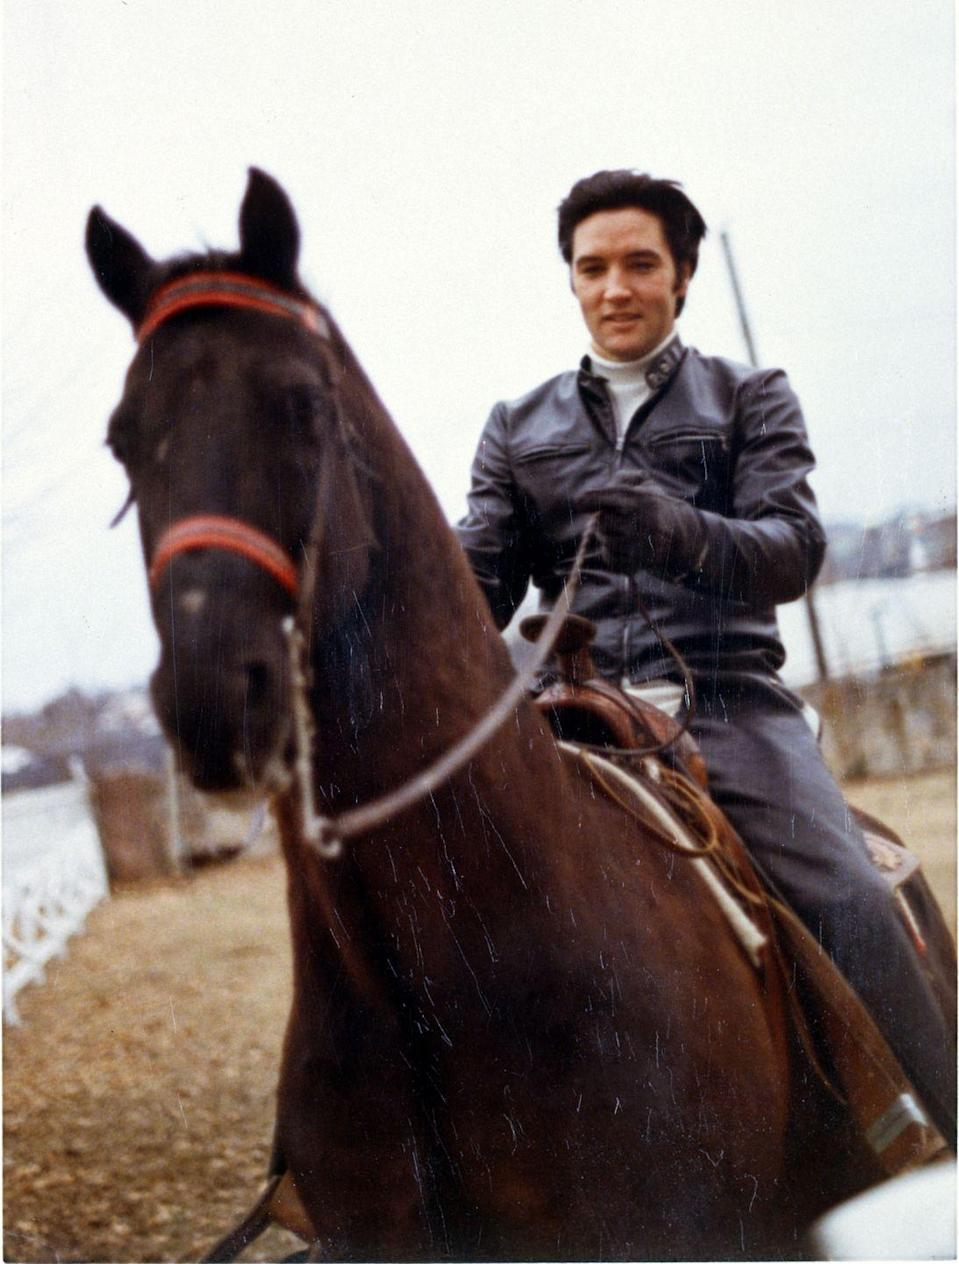 "<p>Elvis was a prolific rider throughout his life and loved horses. The estate had a large barn when he purchased it, but it wasn't until the late '60s that the singer began filling the stalls with various equines. Because the singer's <a href=""https://homeaddict.io/a-look-inside-graceland-elvis-amazing-estate/17/"" rel=""nofollow noopener"" target=""_blank"" data-ylk=""slk:favorite horse was a Palomino"" class=""link rapid-noclick-resp"">favorite horse was a Palomino</a>, to this day the estate always has a Palomino in the barn. </p>"